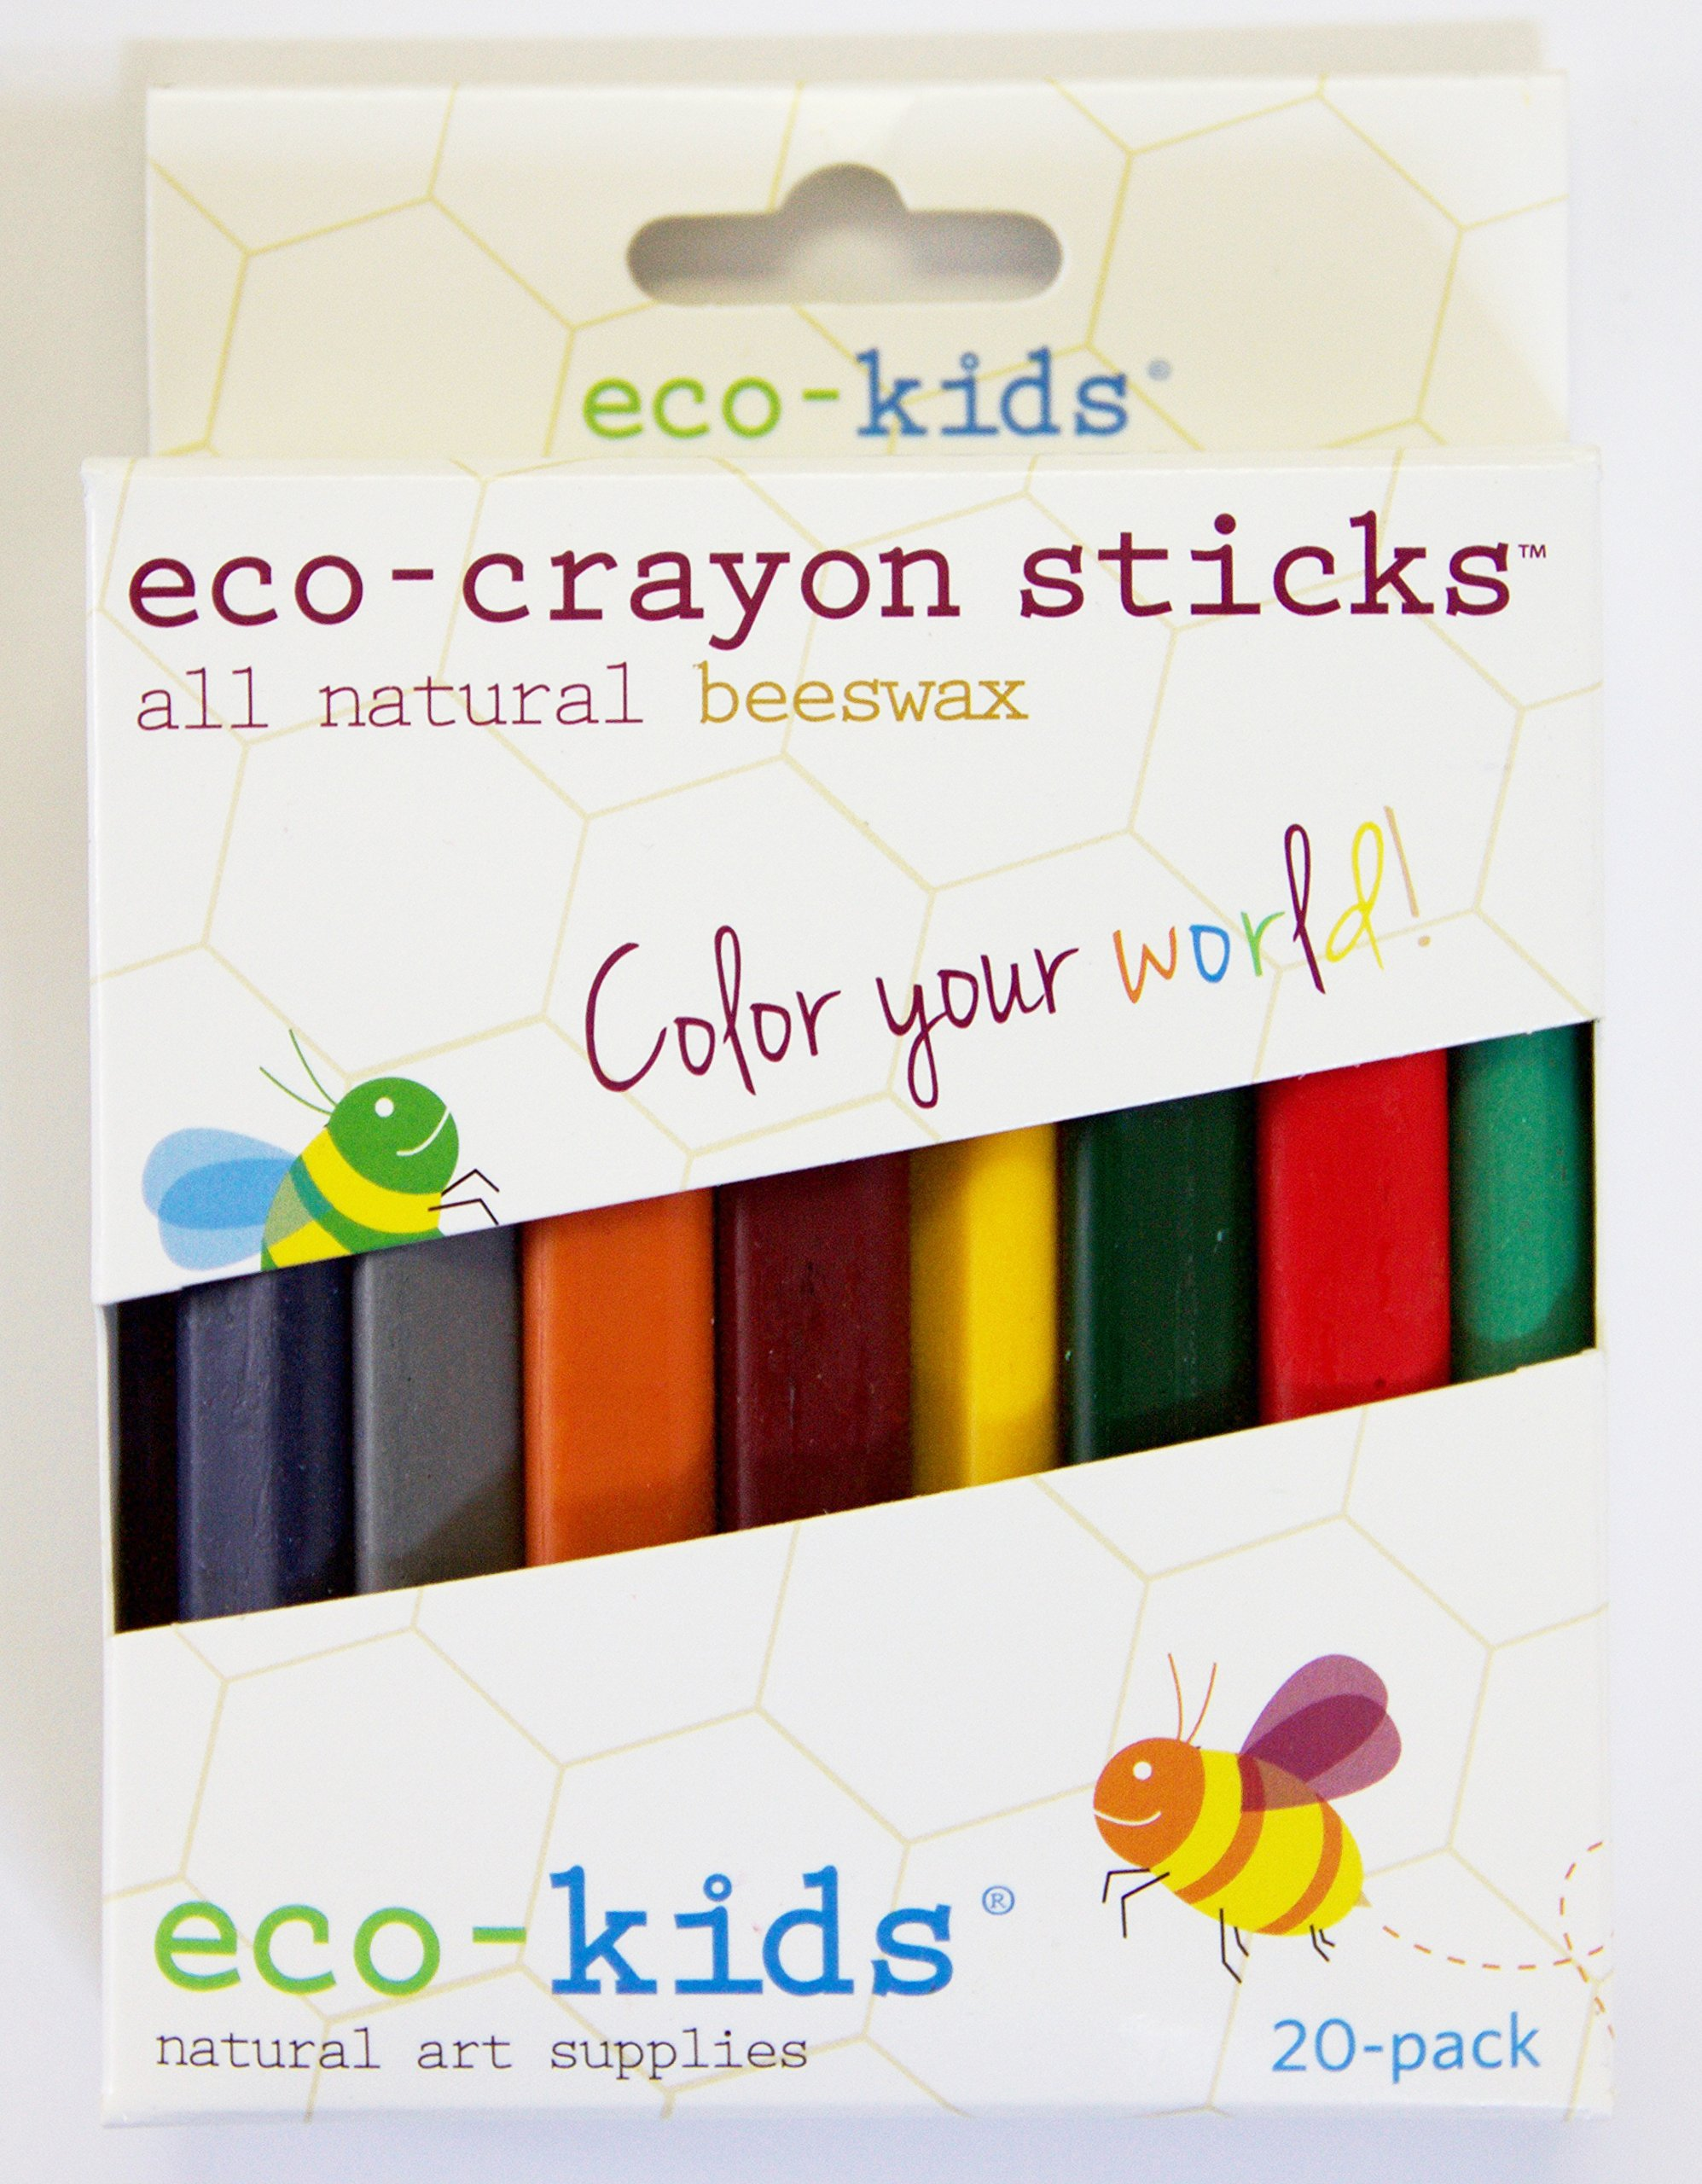 Eco-Crayon Sticks 20 Pack by eco-kids